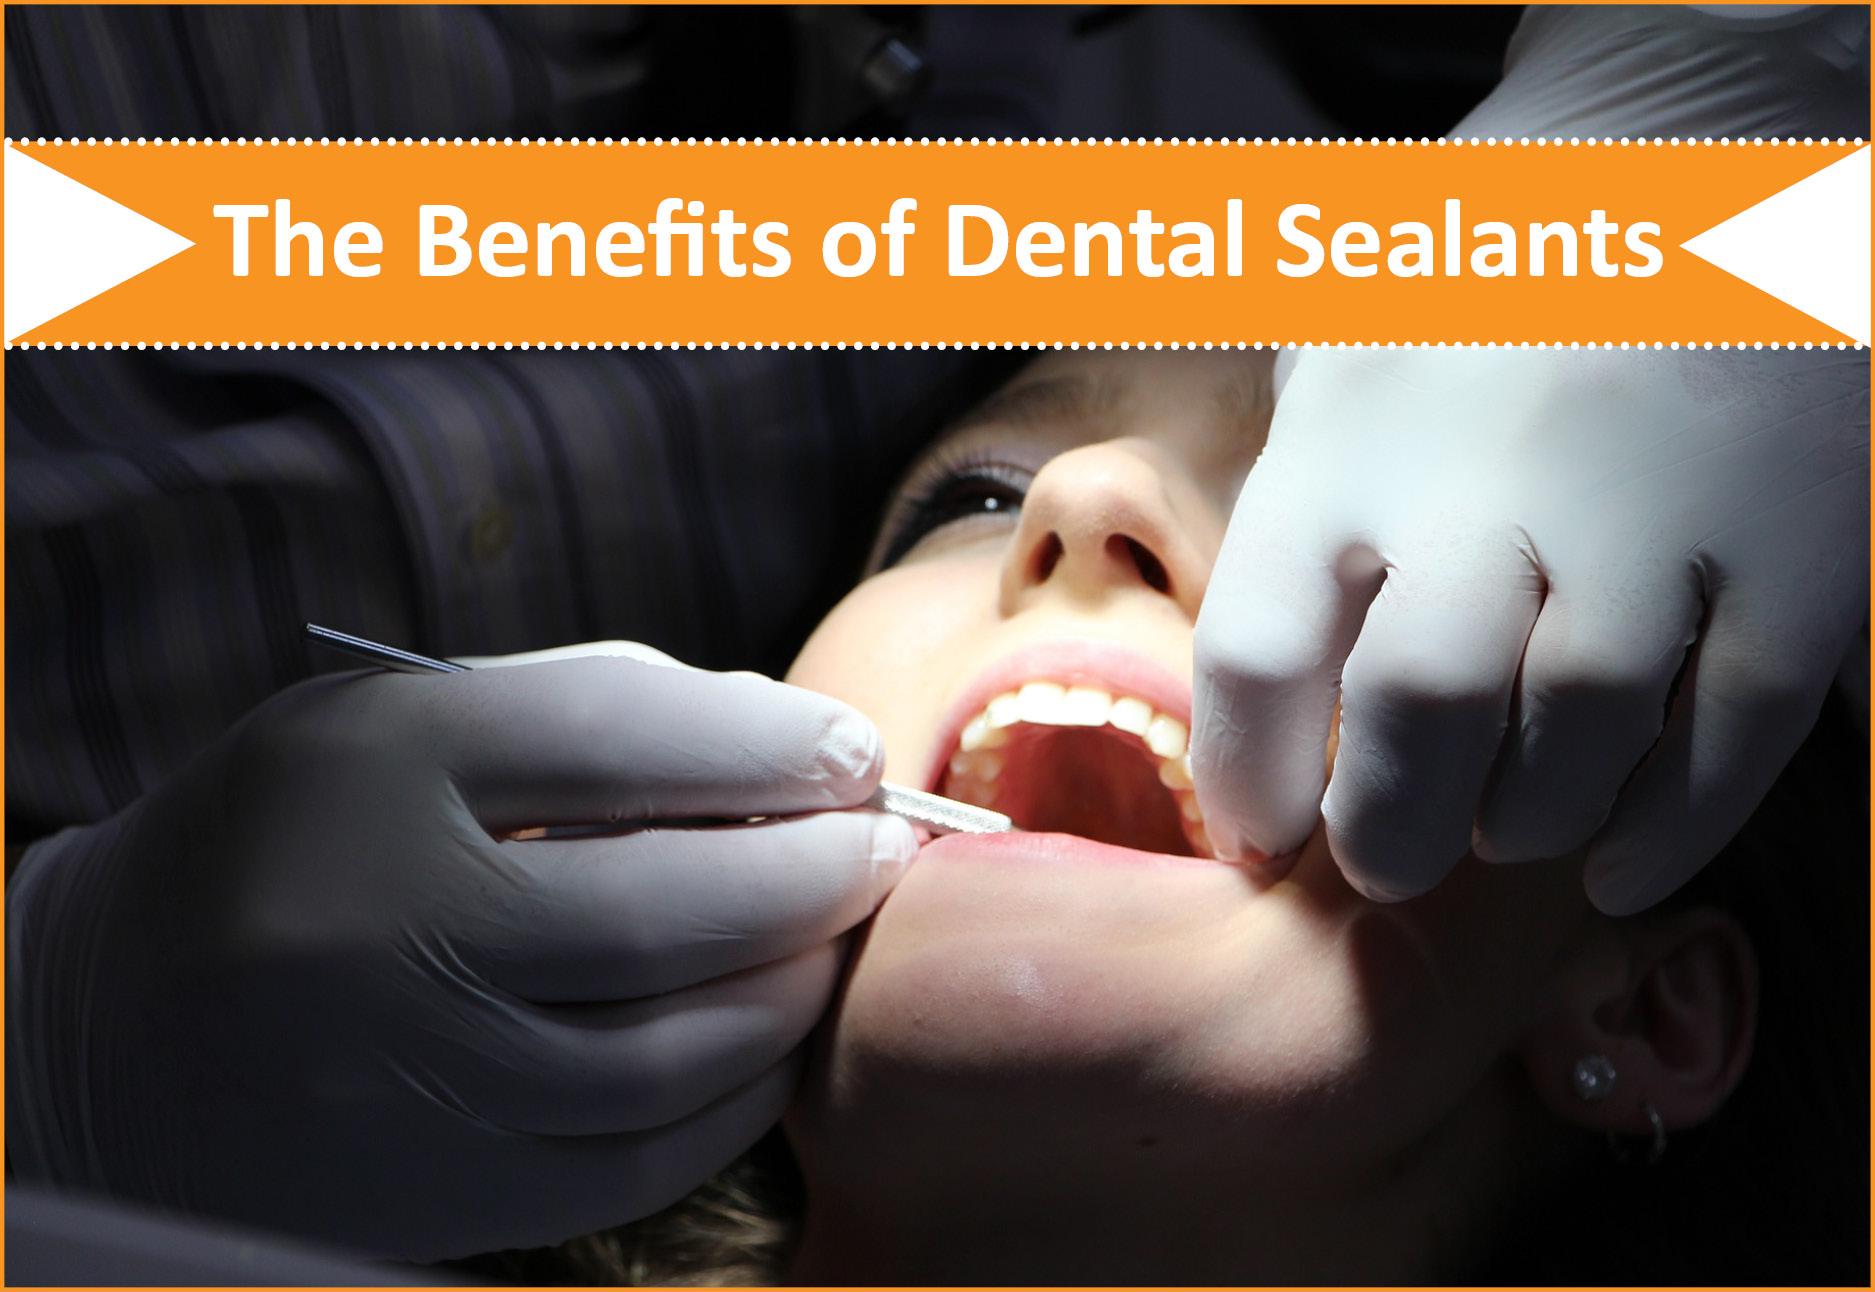 The Benefits of Dental Sealants